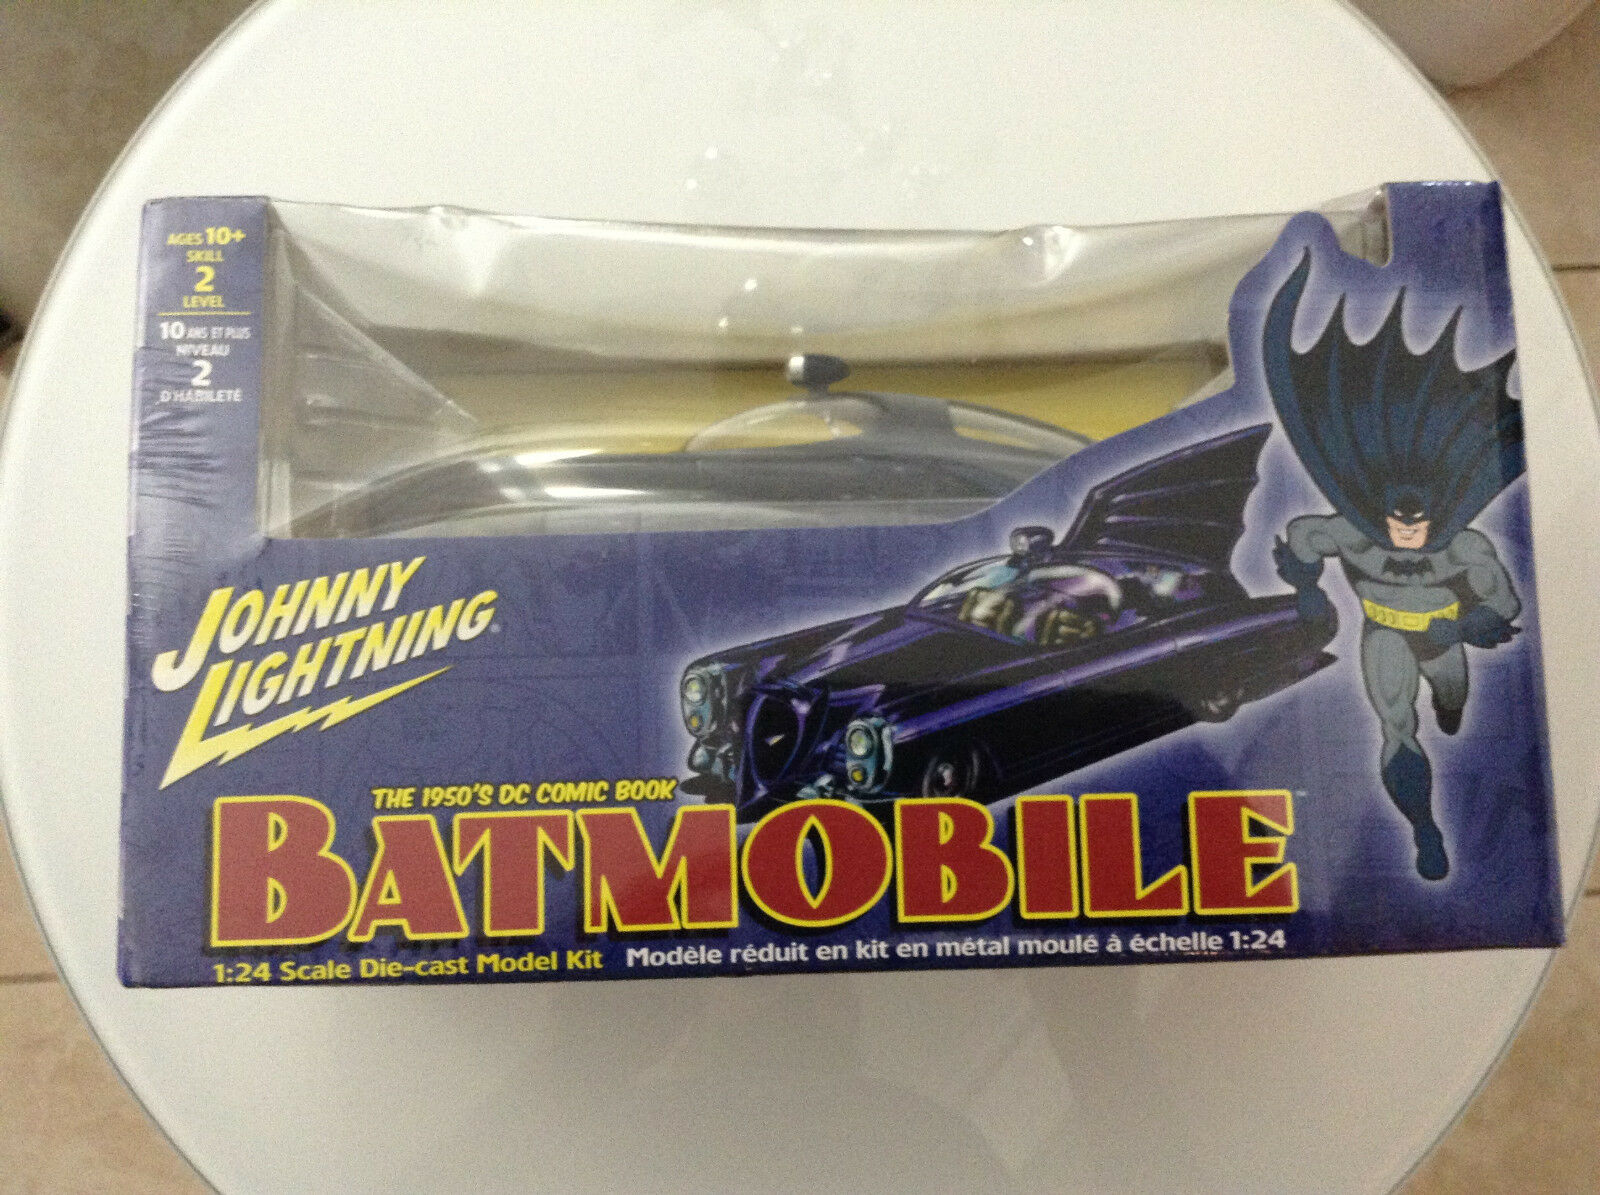 Batman in den 1950er jahren dc comic - batmobil 24 skala die-cast modell kit vehicle1